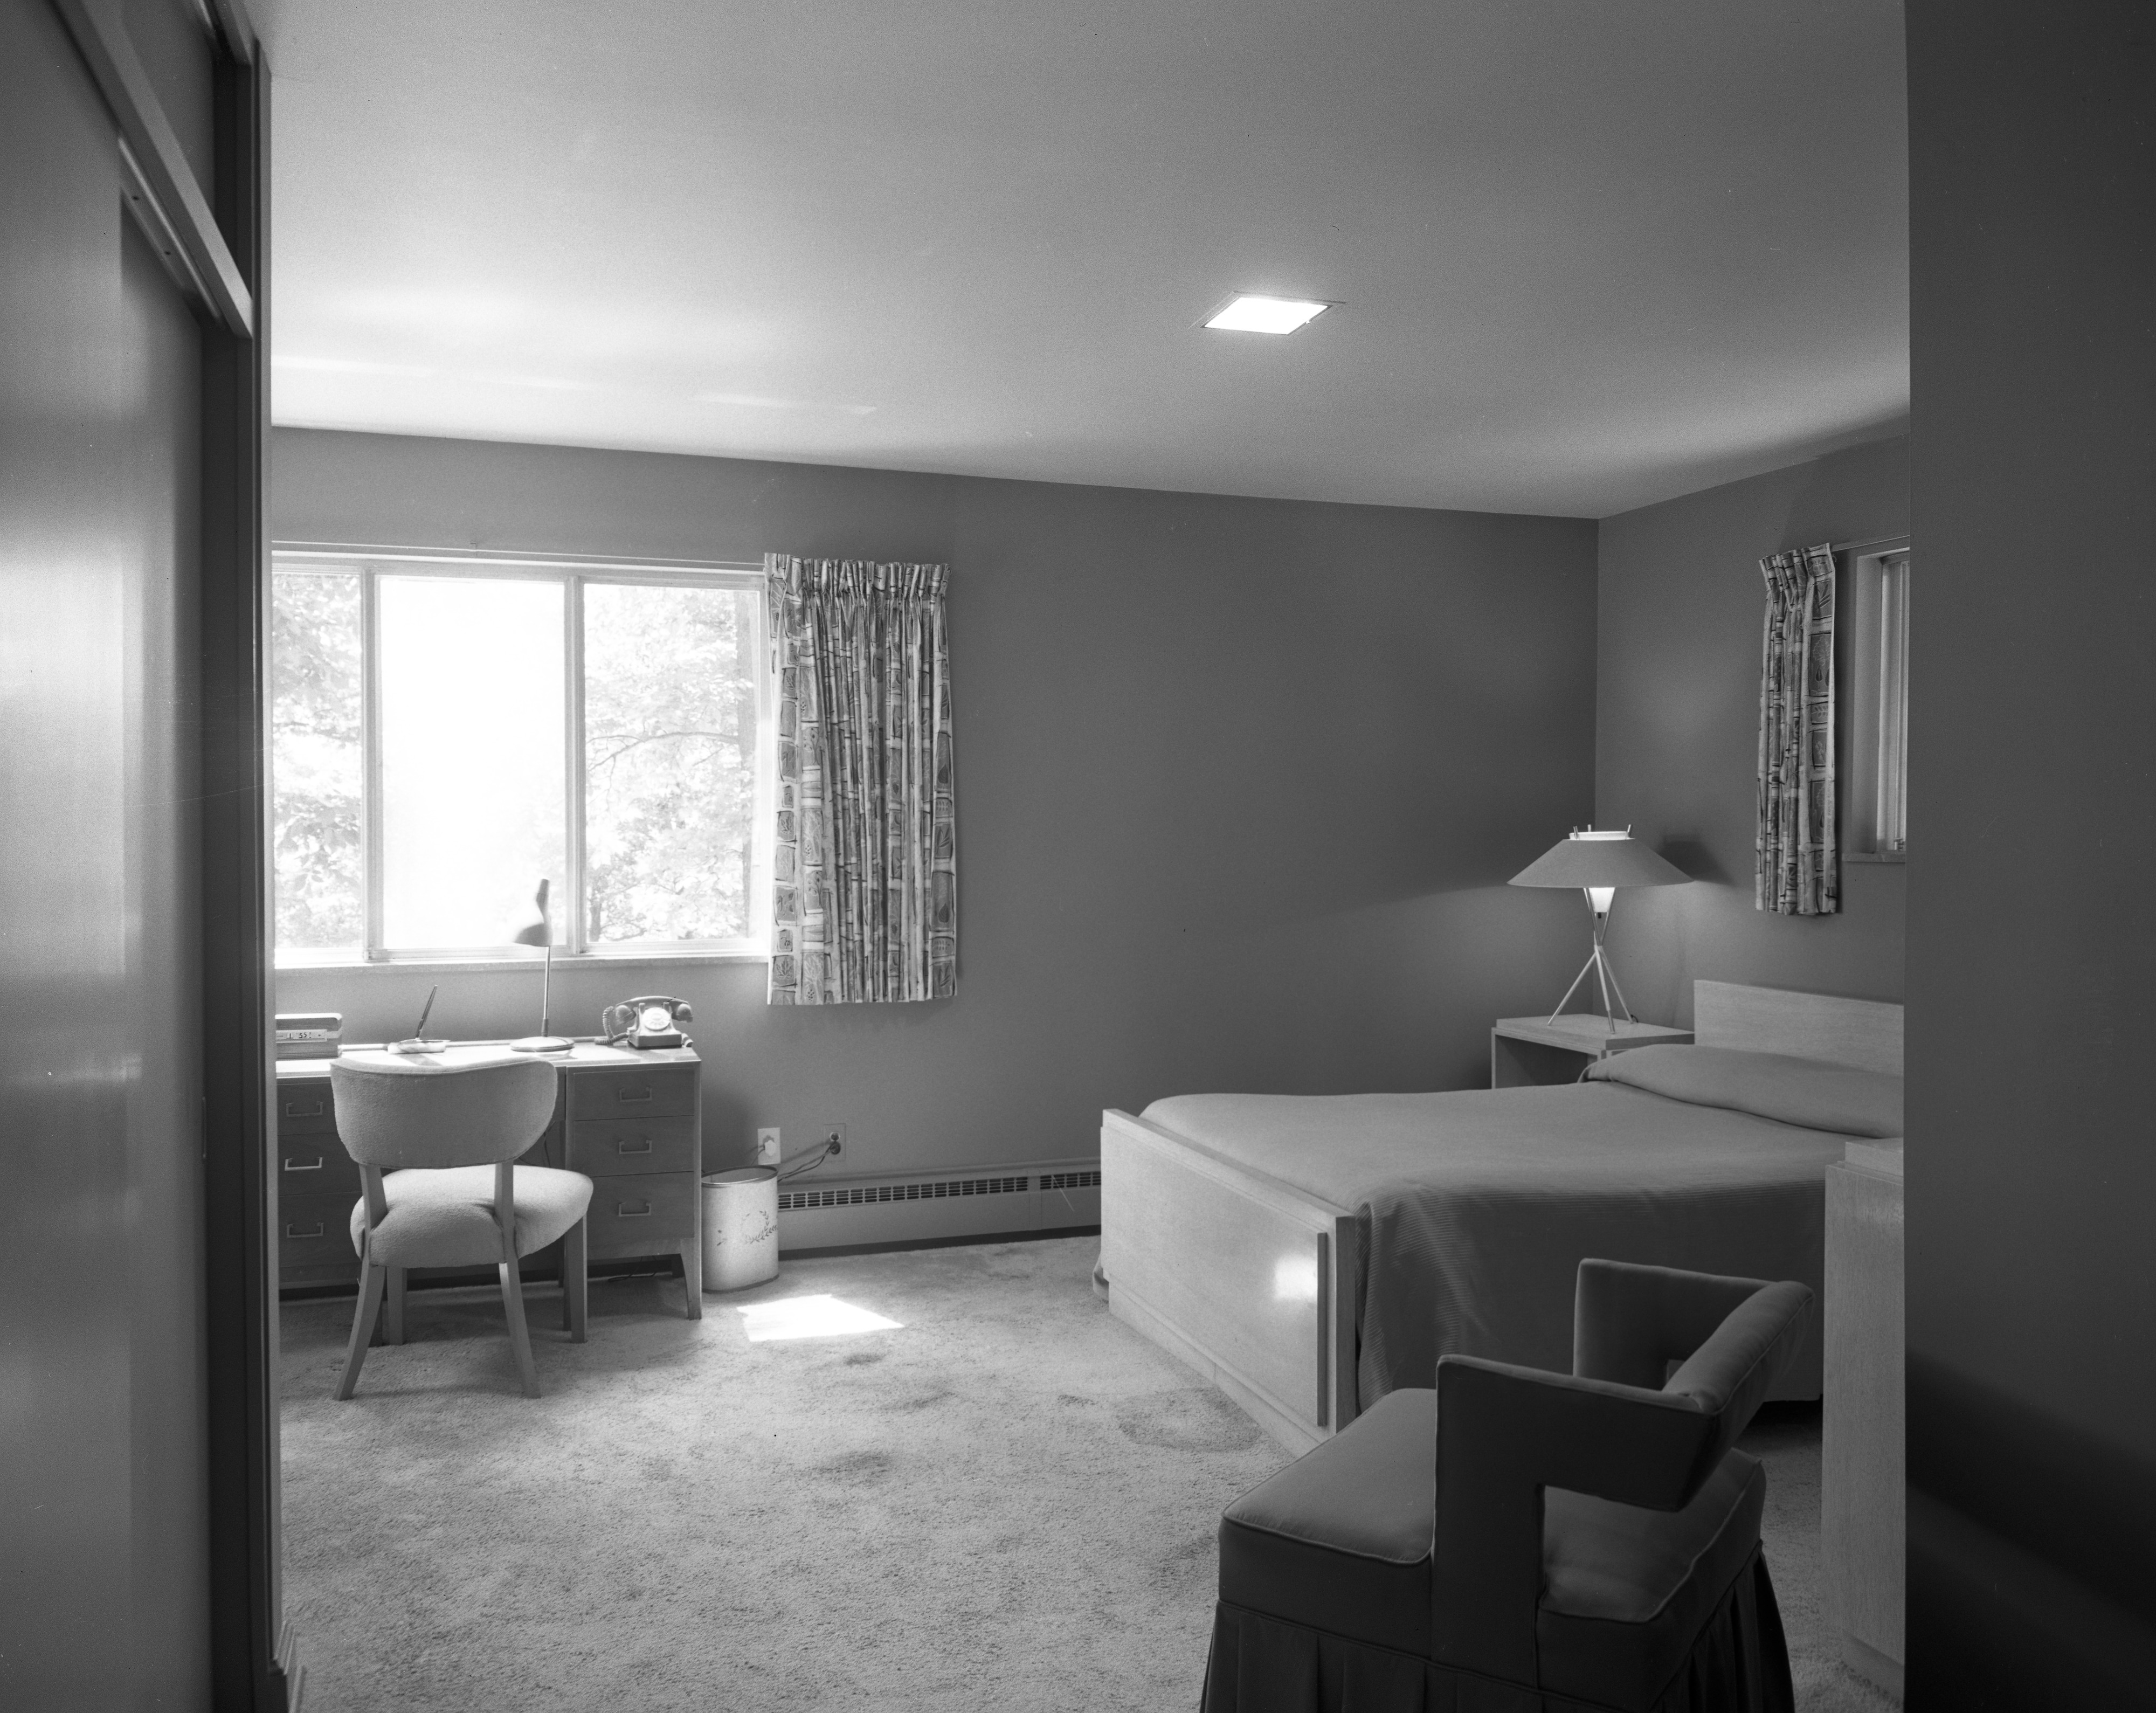 Bedroom In Brown Family Mid-Century Modern Home on N Maple Road, July 1956 image